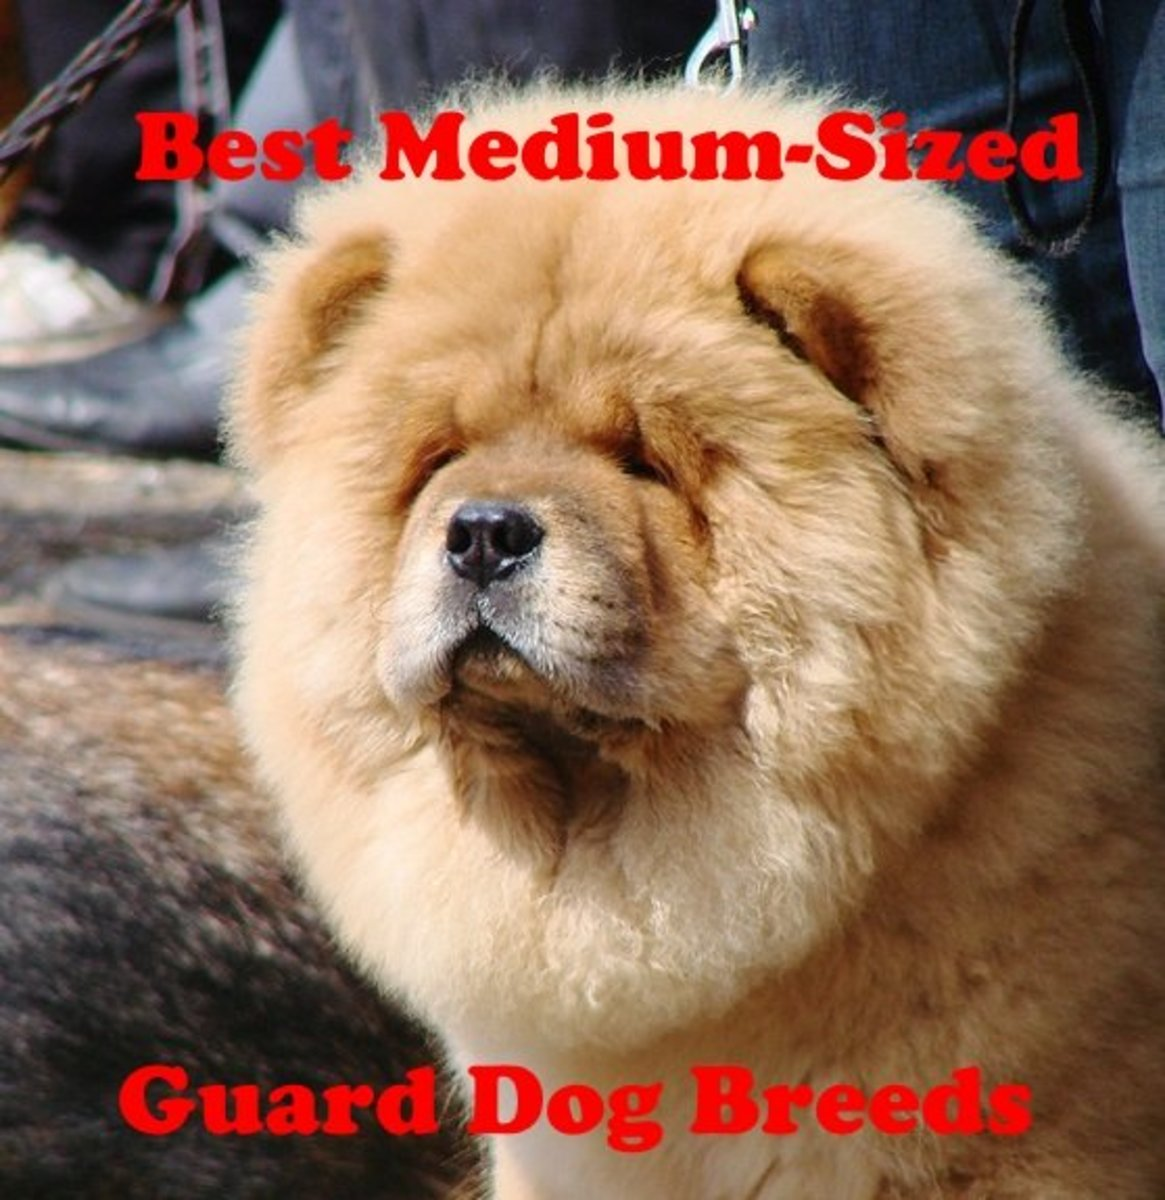 Best Medium-Sized Guard Dog Breeds